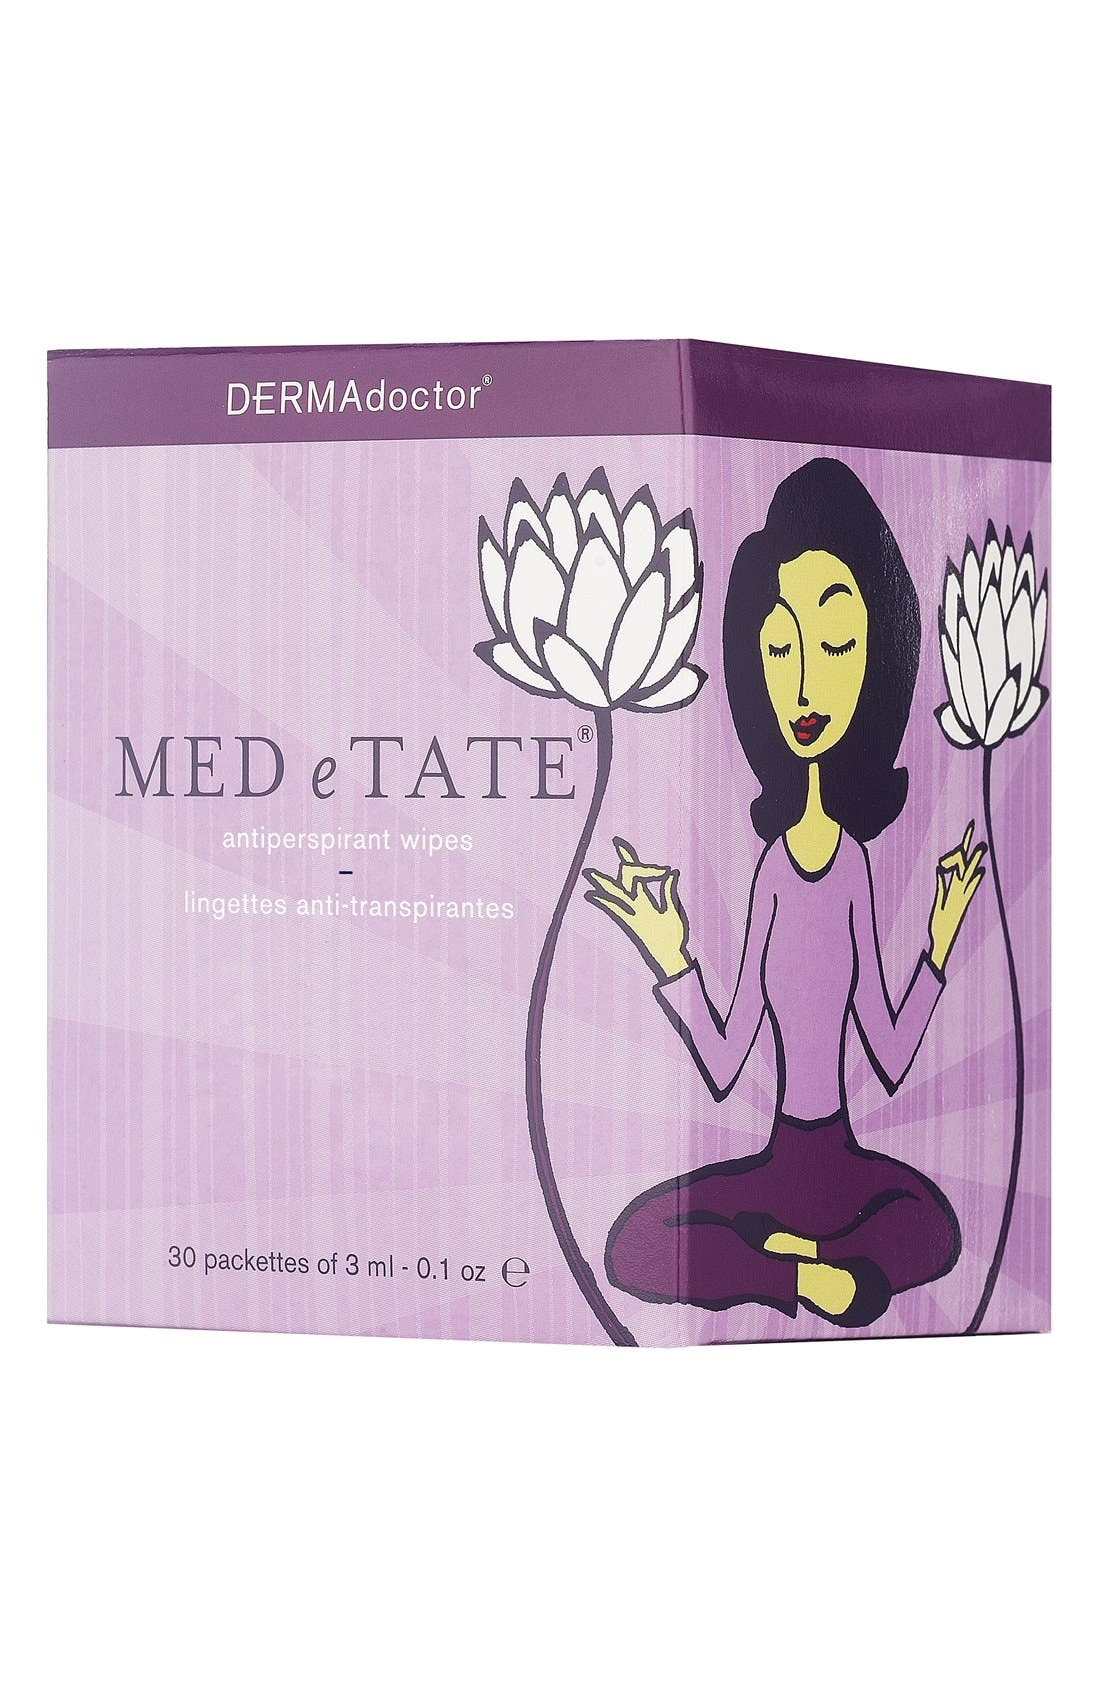 DERMAdoctor® 'MED e TATE®' Antiperspirant Wipes